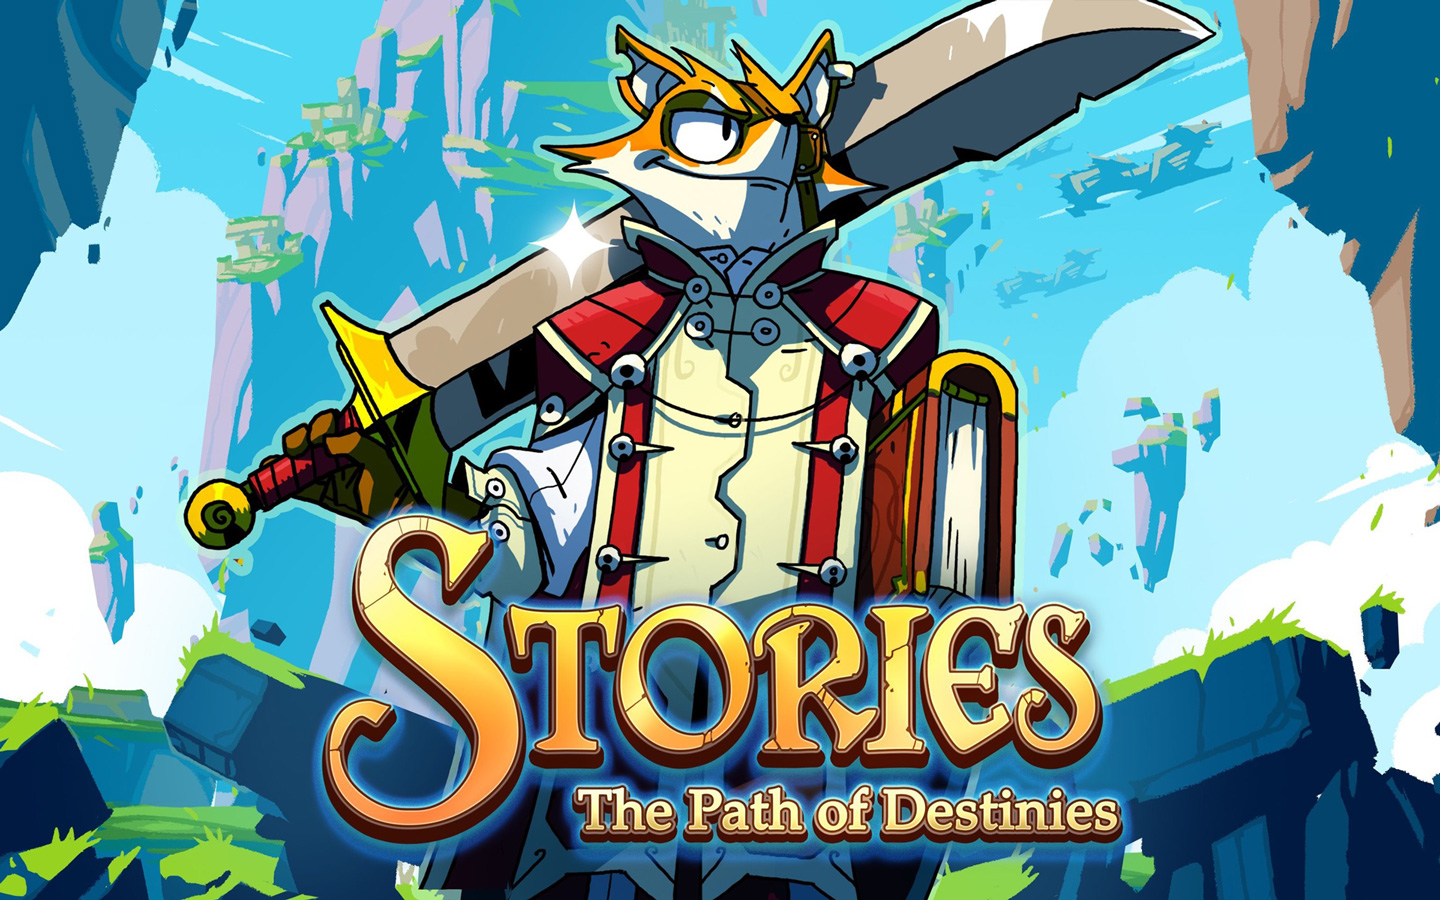 Free Stories: The Path of Destinies Wallpaper in 1440x900